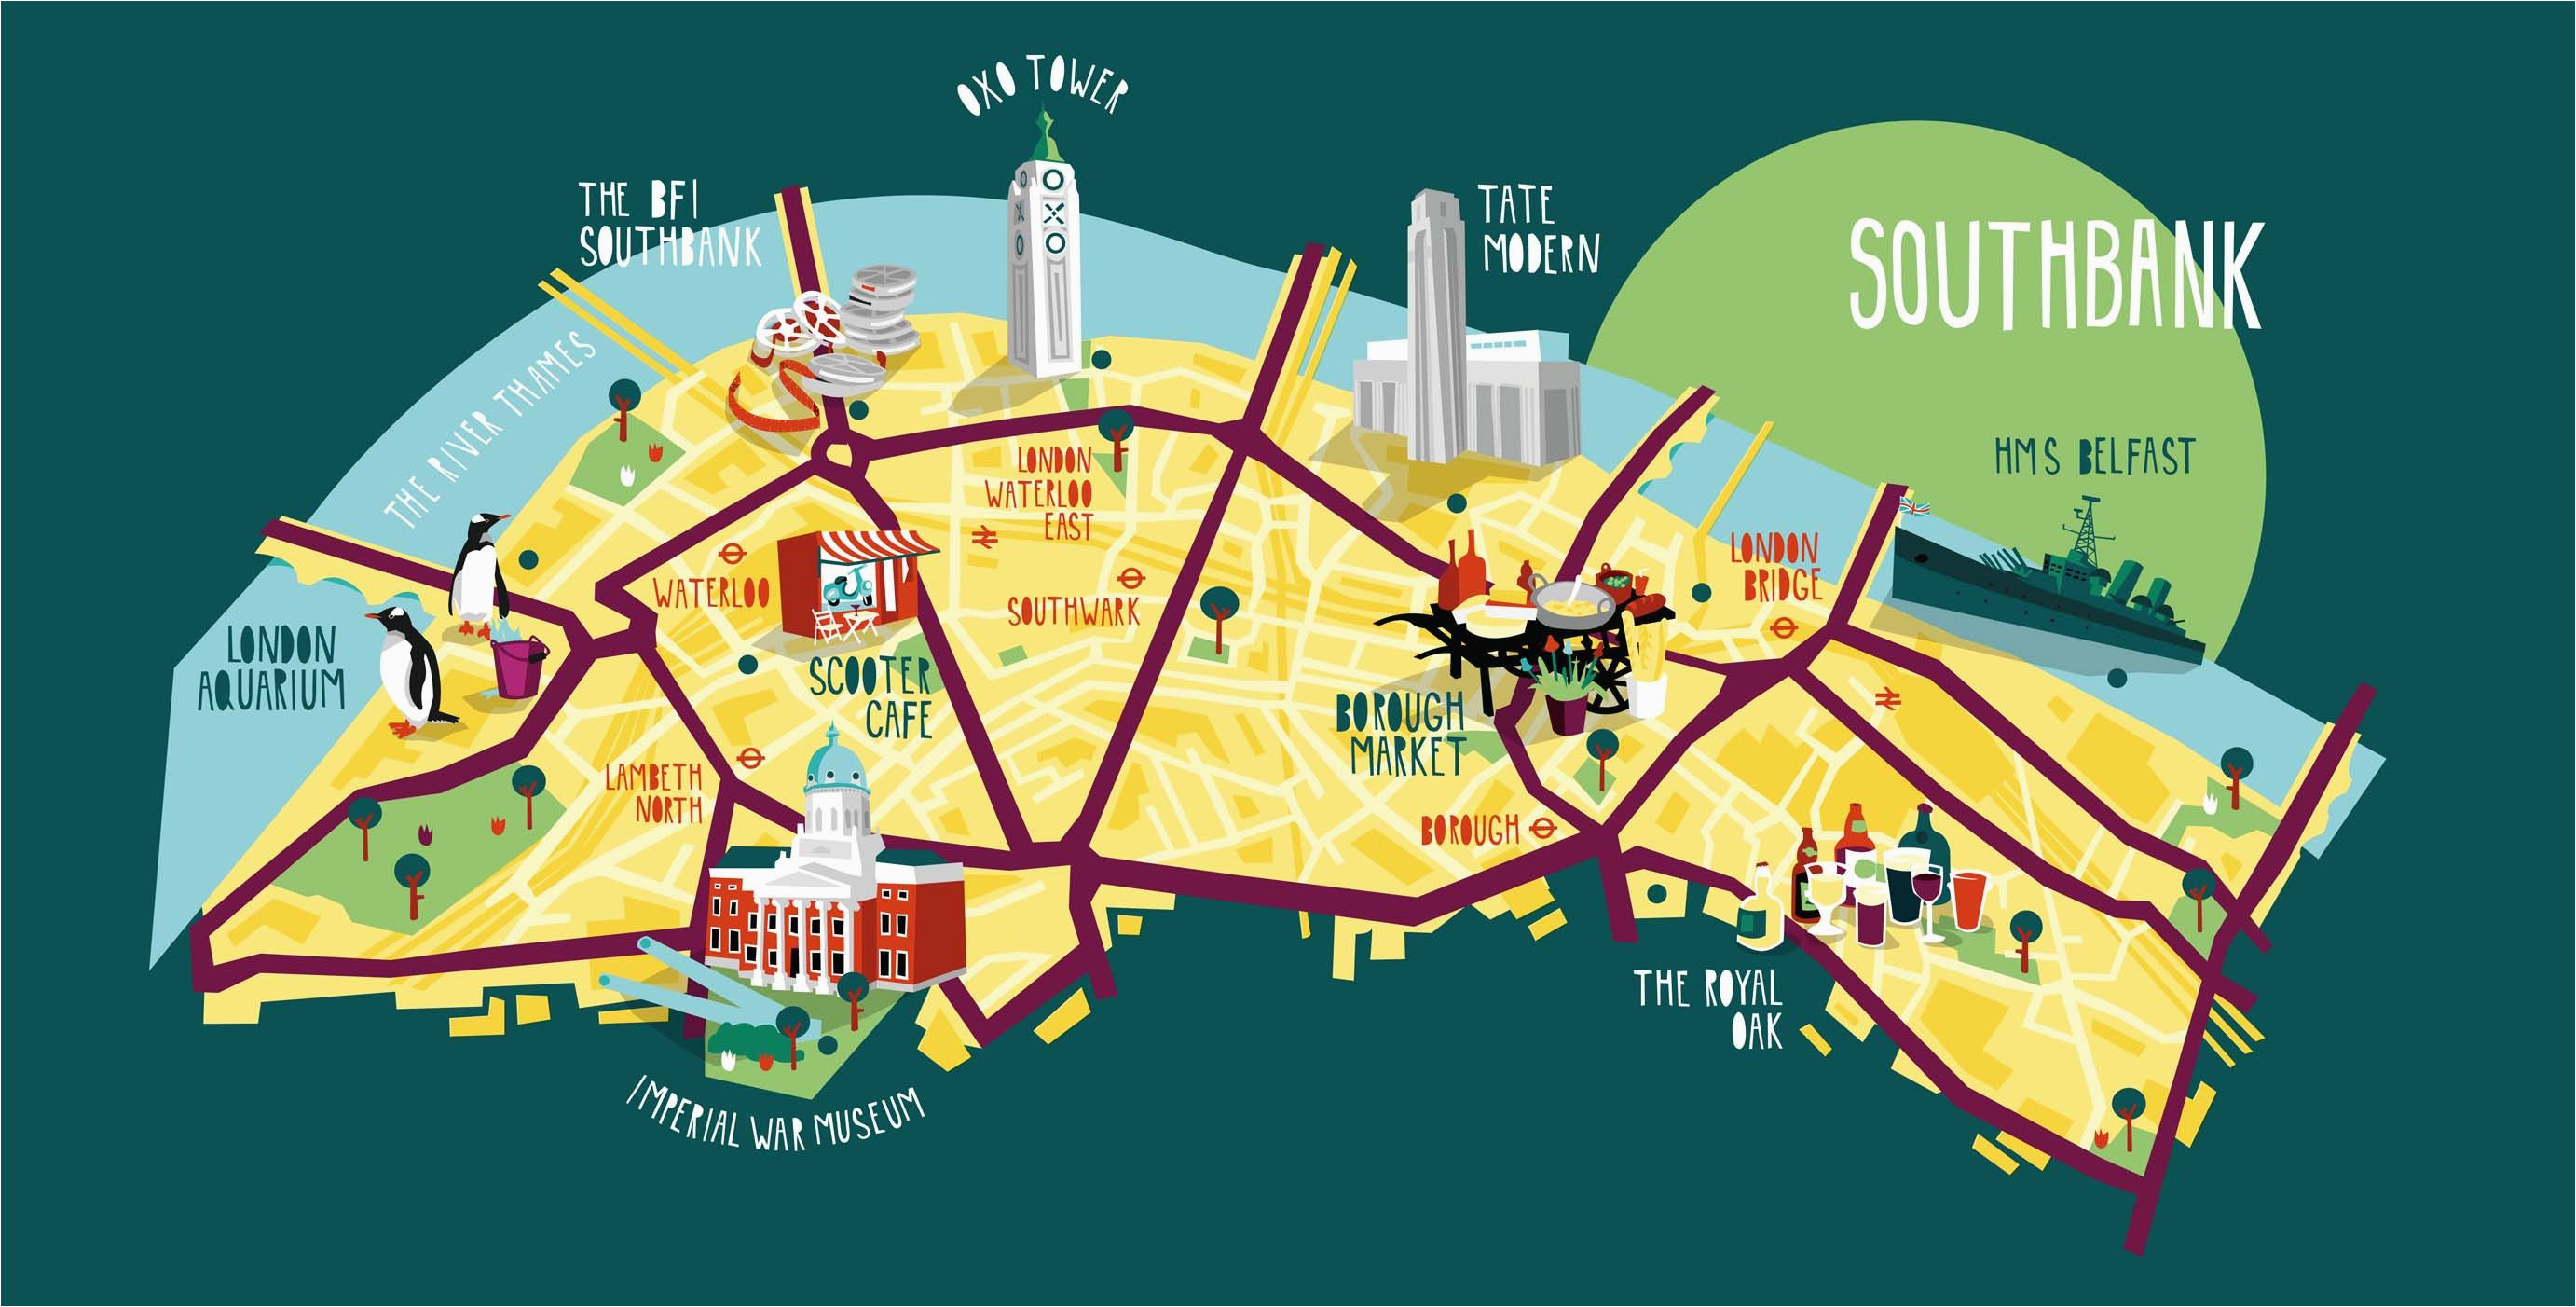 southbank map illustration kerryhyndman co uk map travel